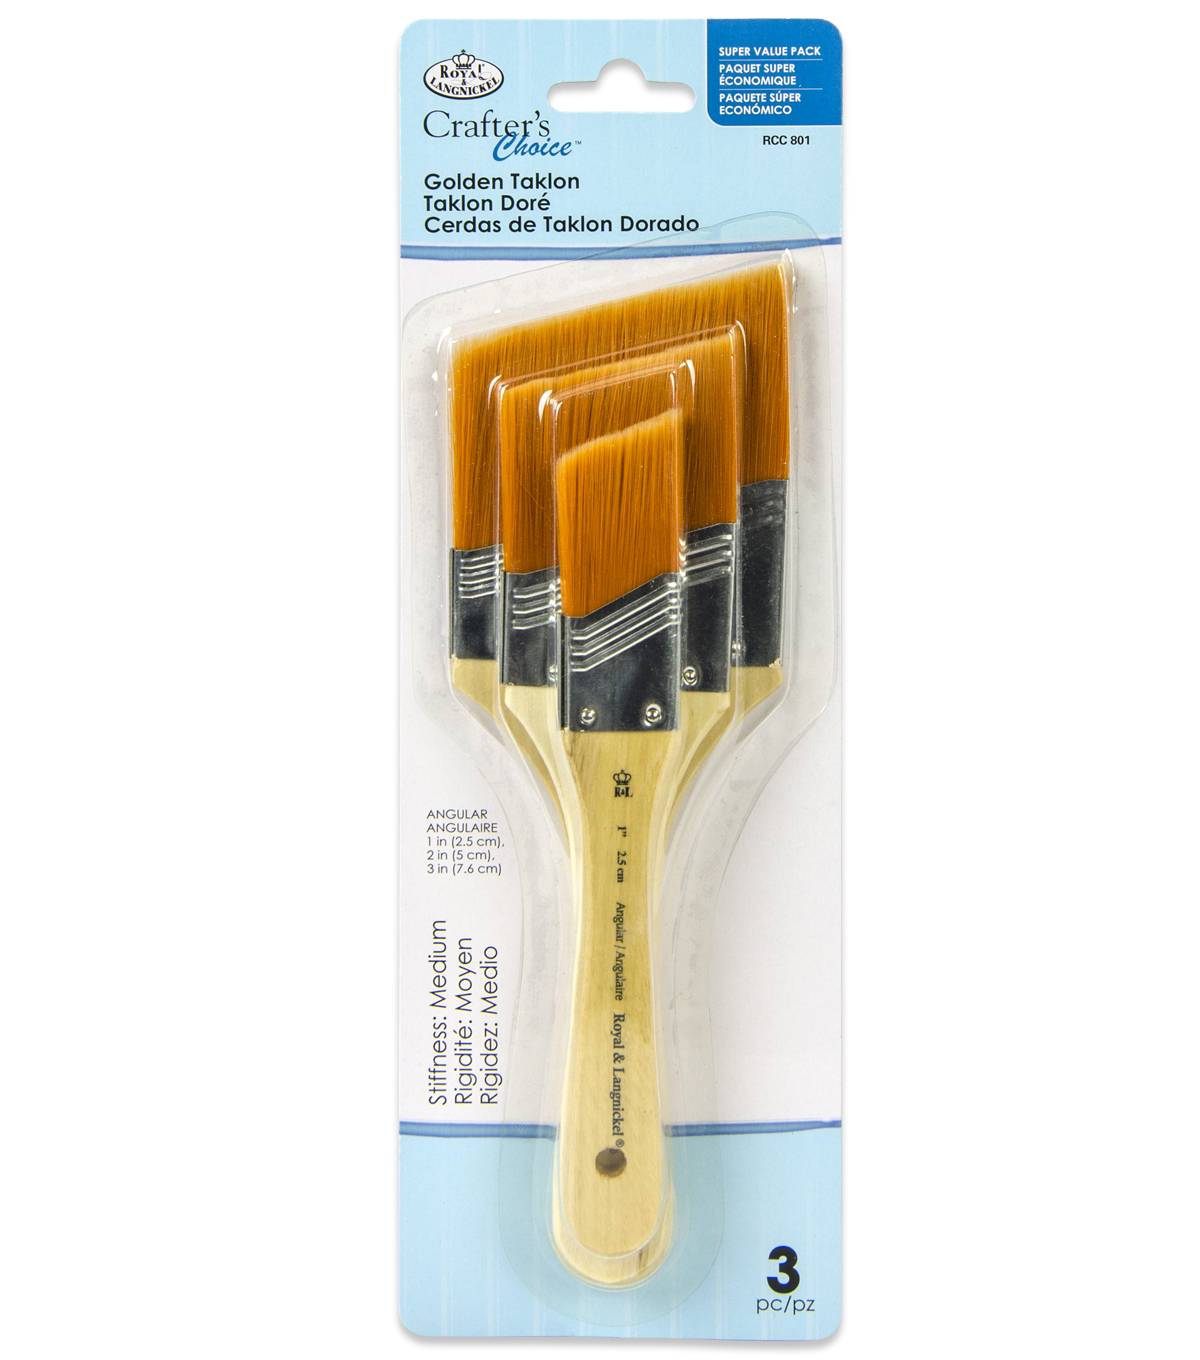 Royal & Langnickel Large Angular Brush Set 3pk-Golden Taklon